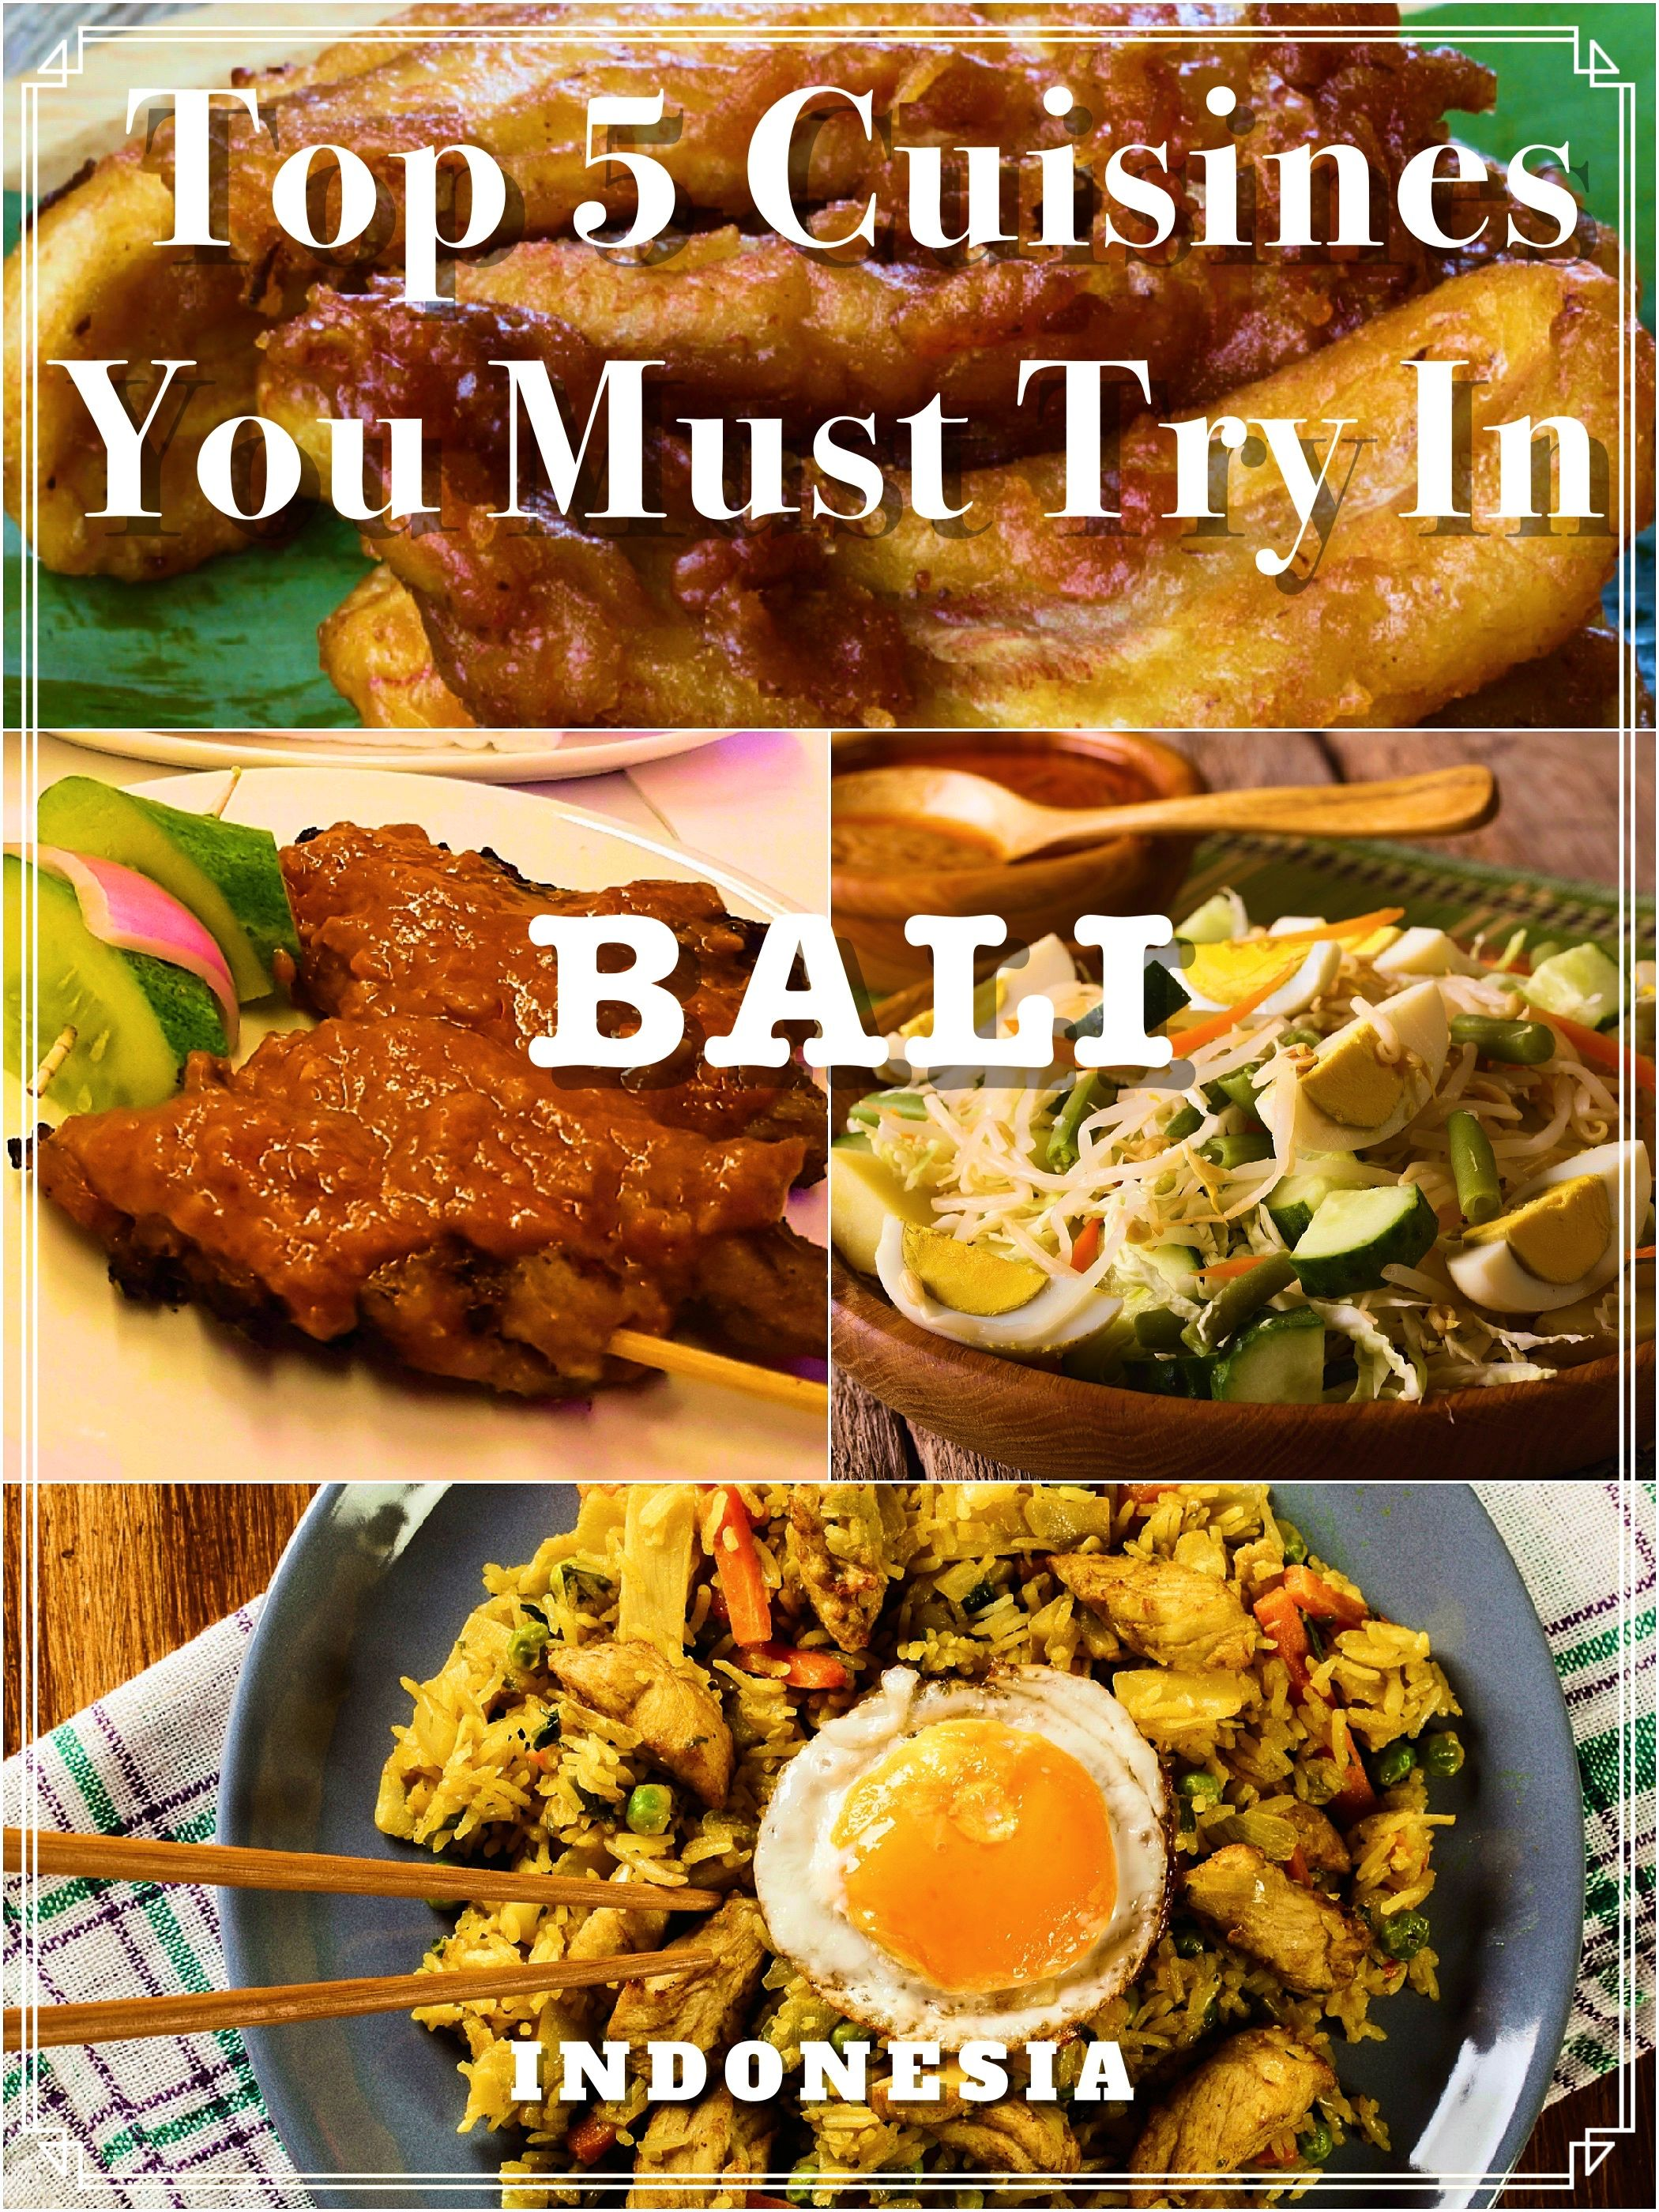 Cuisine Bali Top 5 Cuisines You Must Try In Bali Indonesia Food Travel